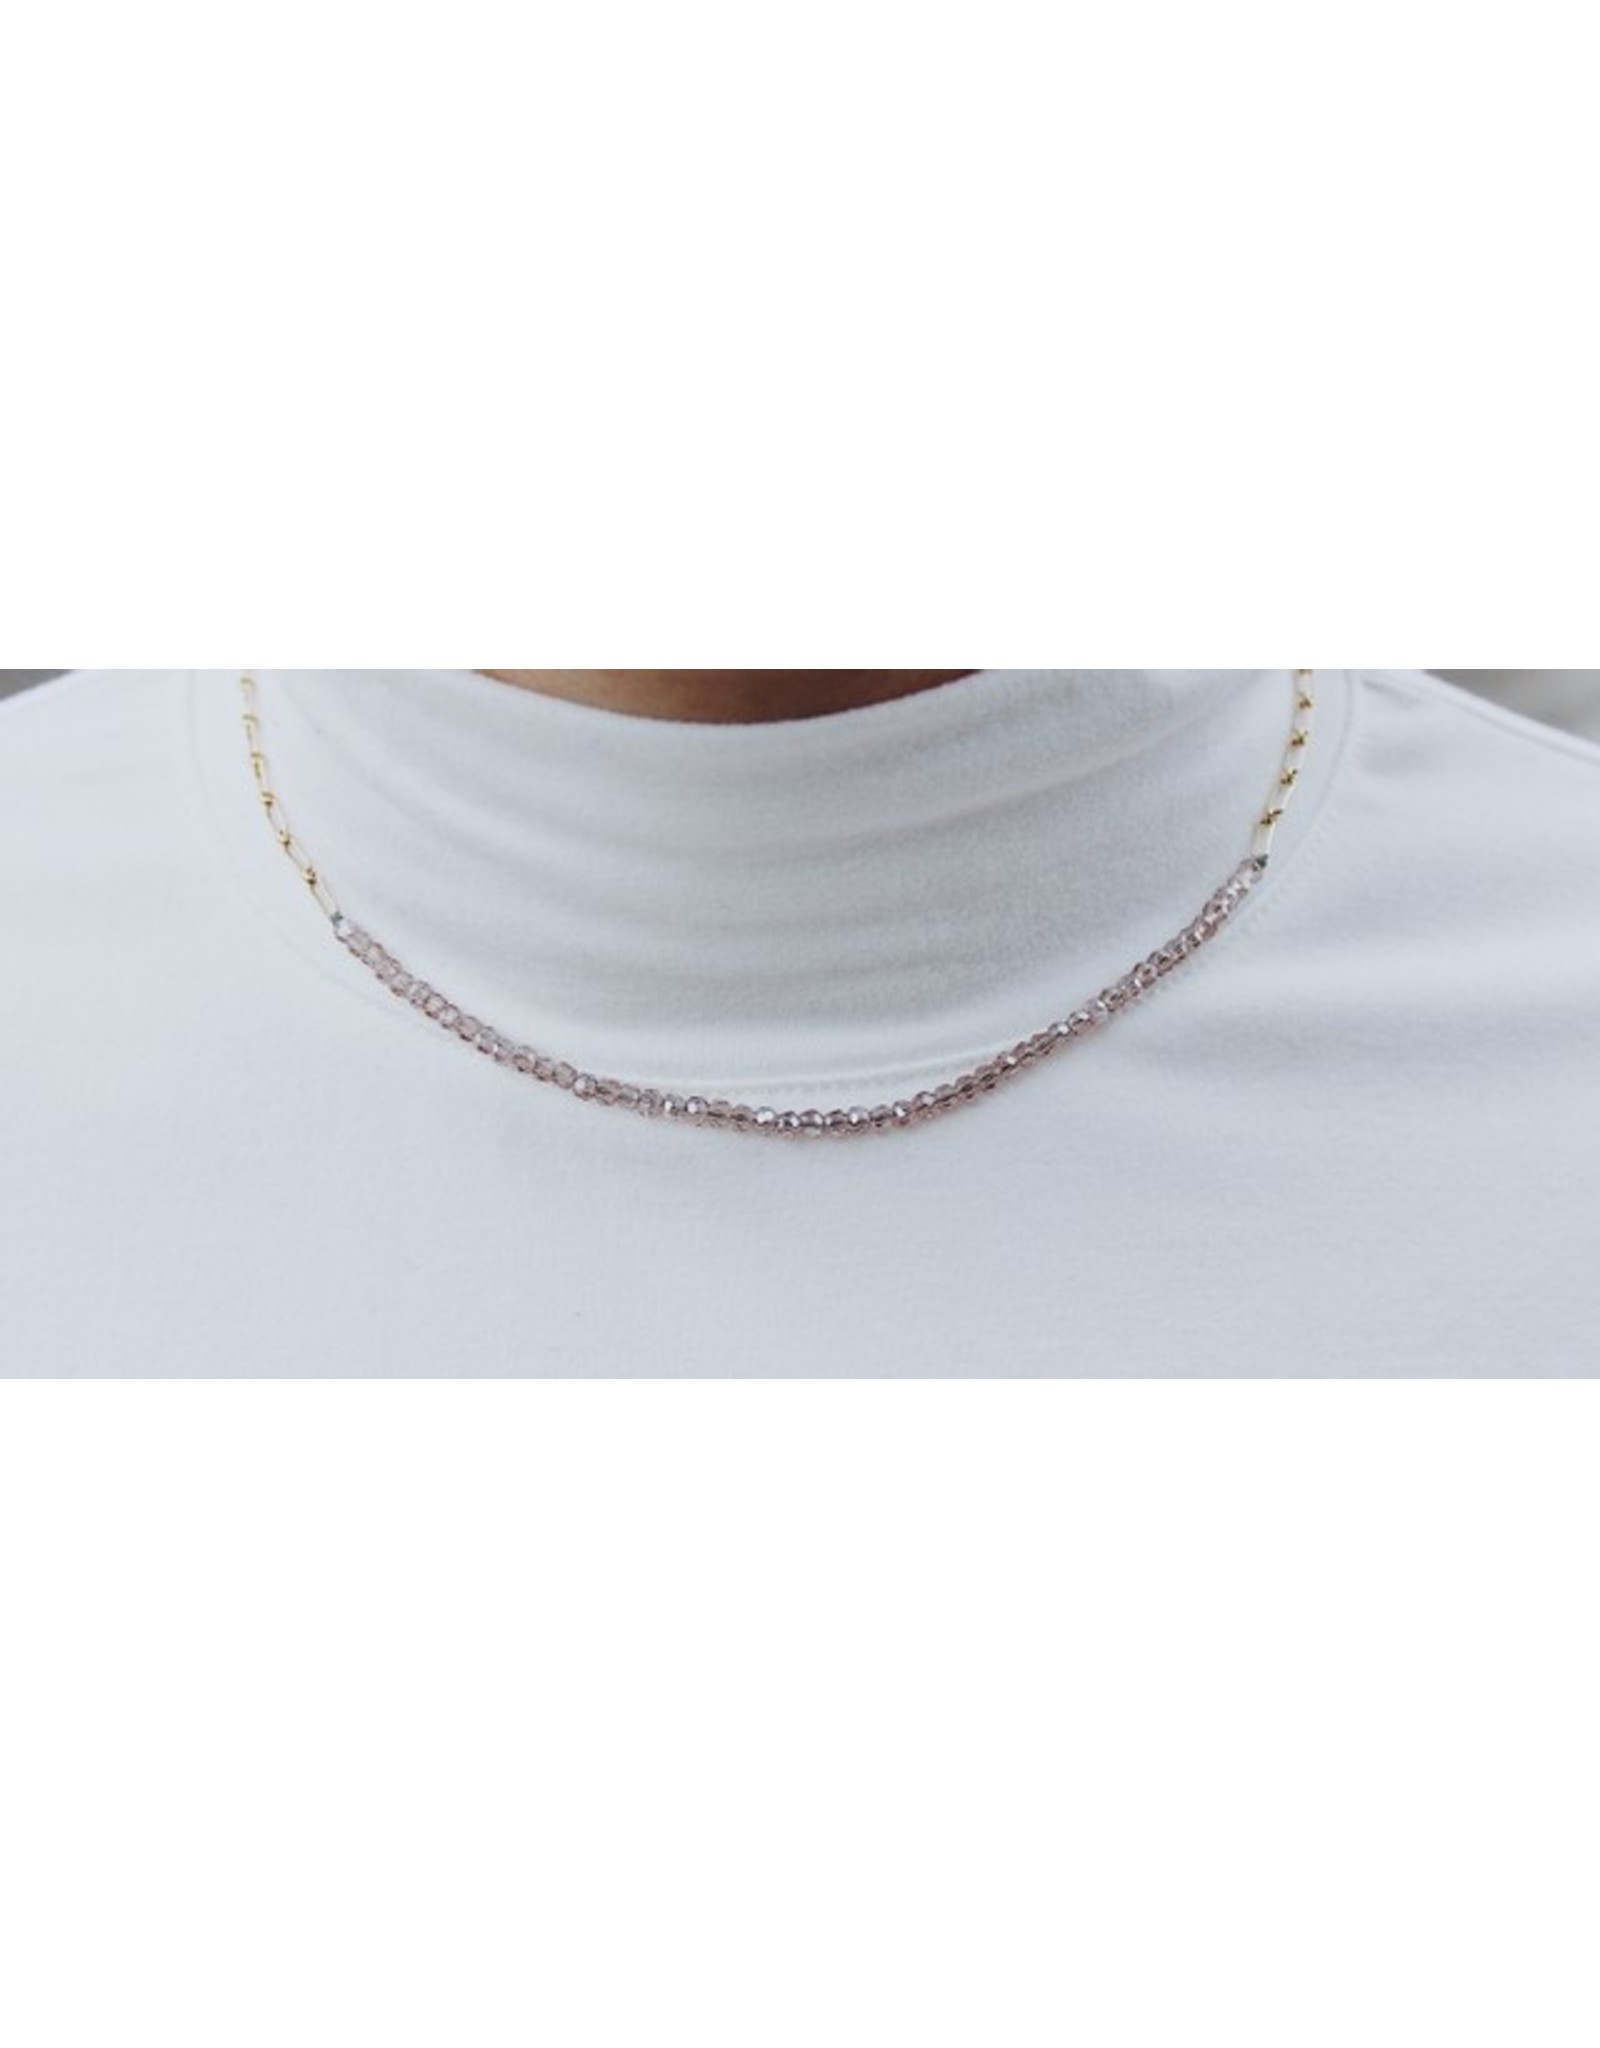 CAD BEADED NECKLACE